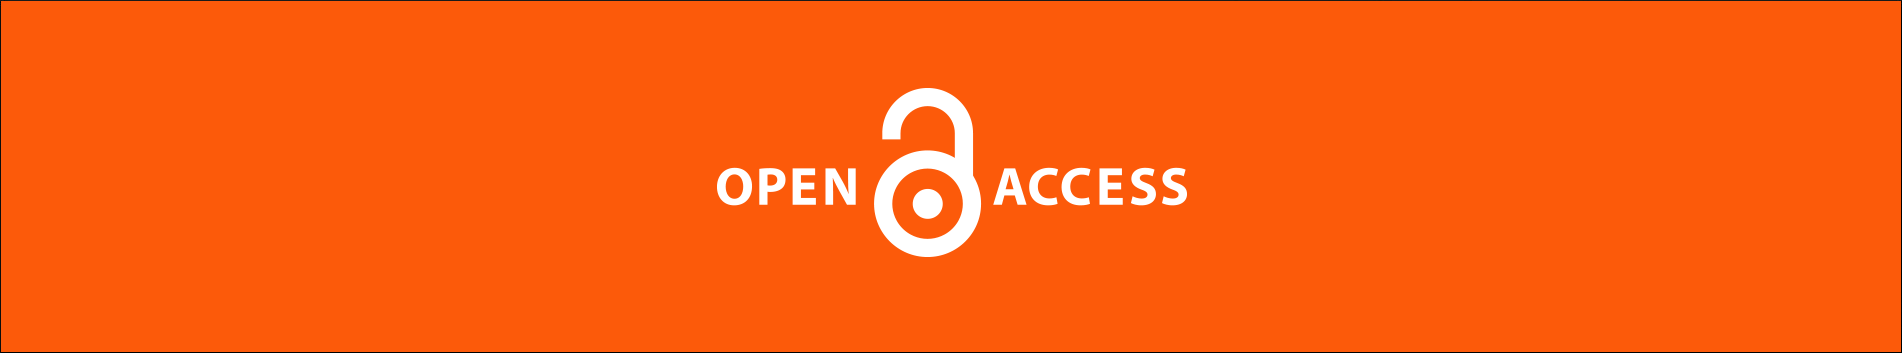 Open access in a time of illness feature image